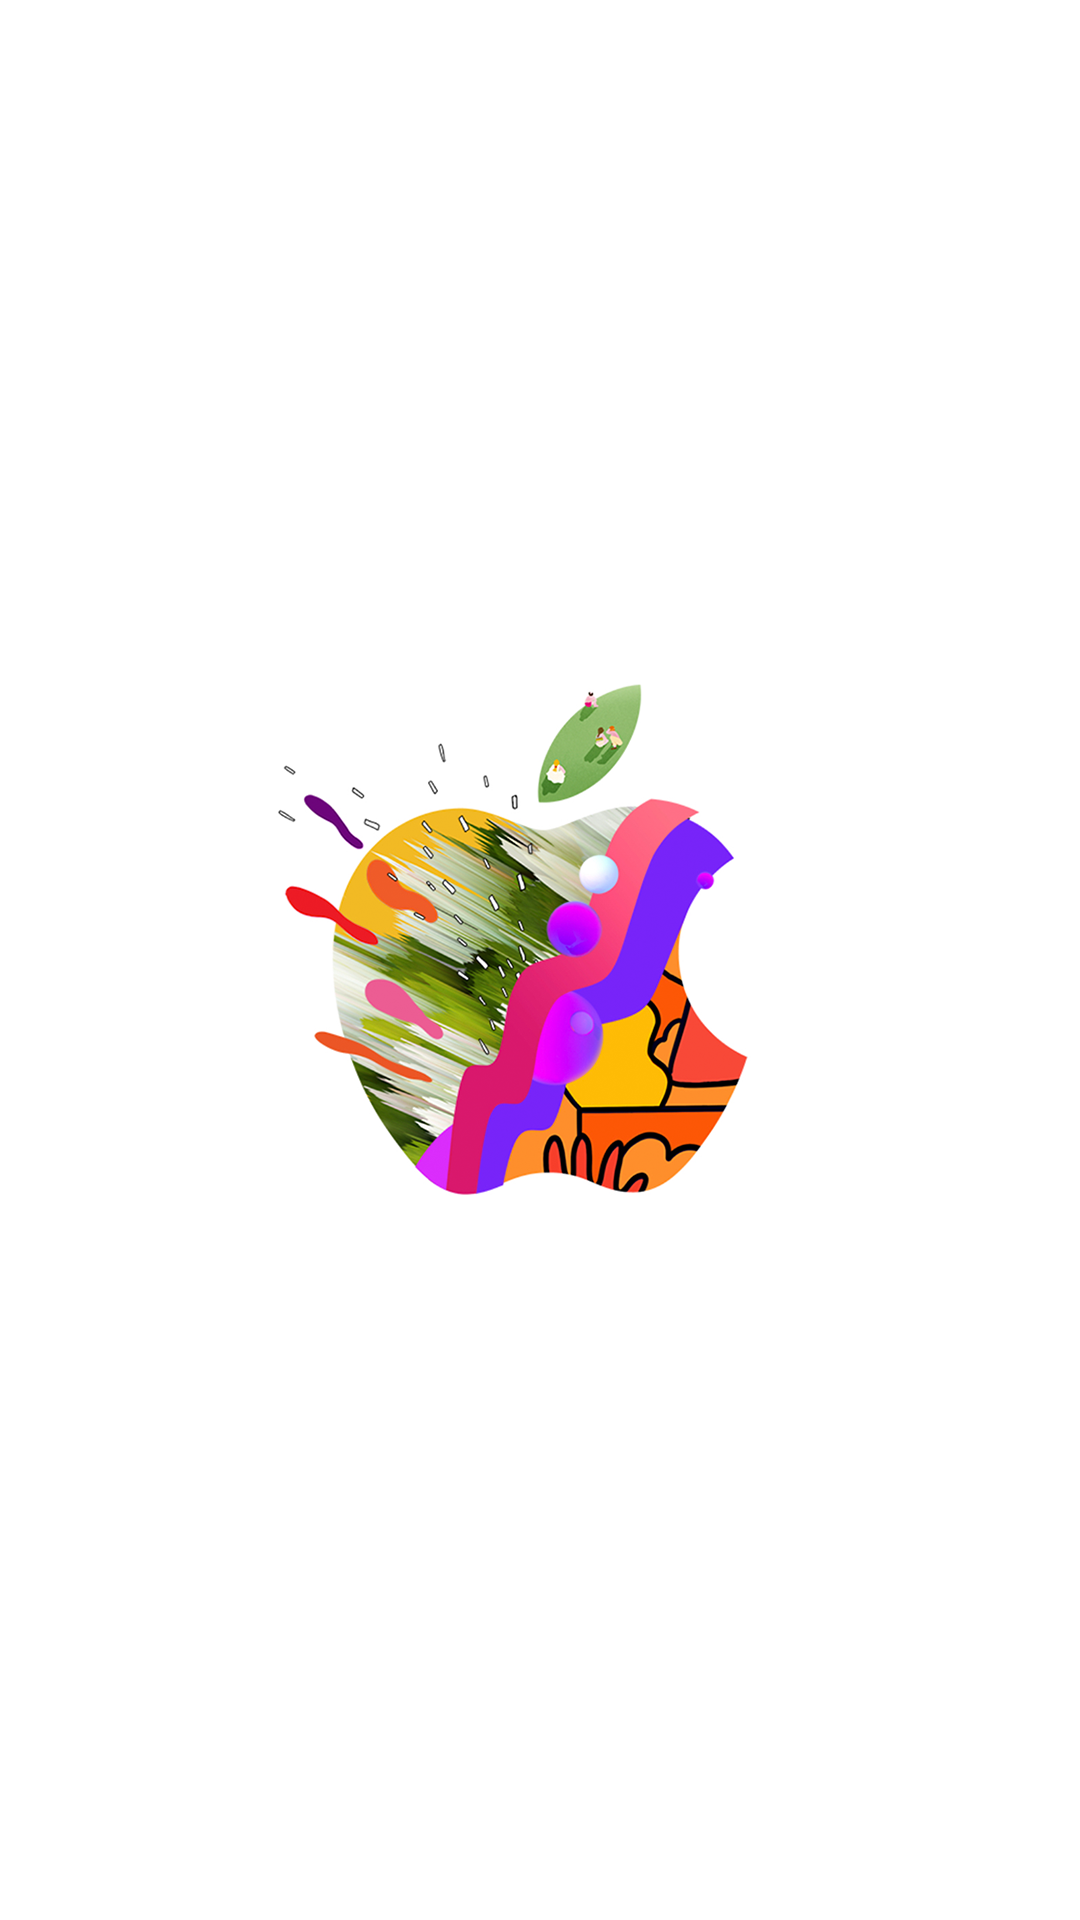 Milan Apple Store And Iphone Xs Event Inspired Wallpapers Hypebeast Iphone Wallpaper Apple Logo Wallpaper Iphone Iphone Wallpaper Logo